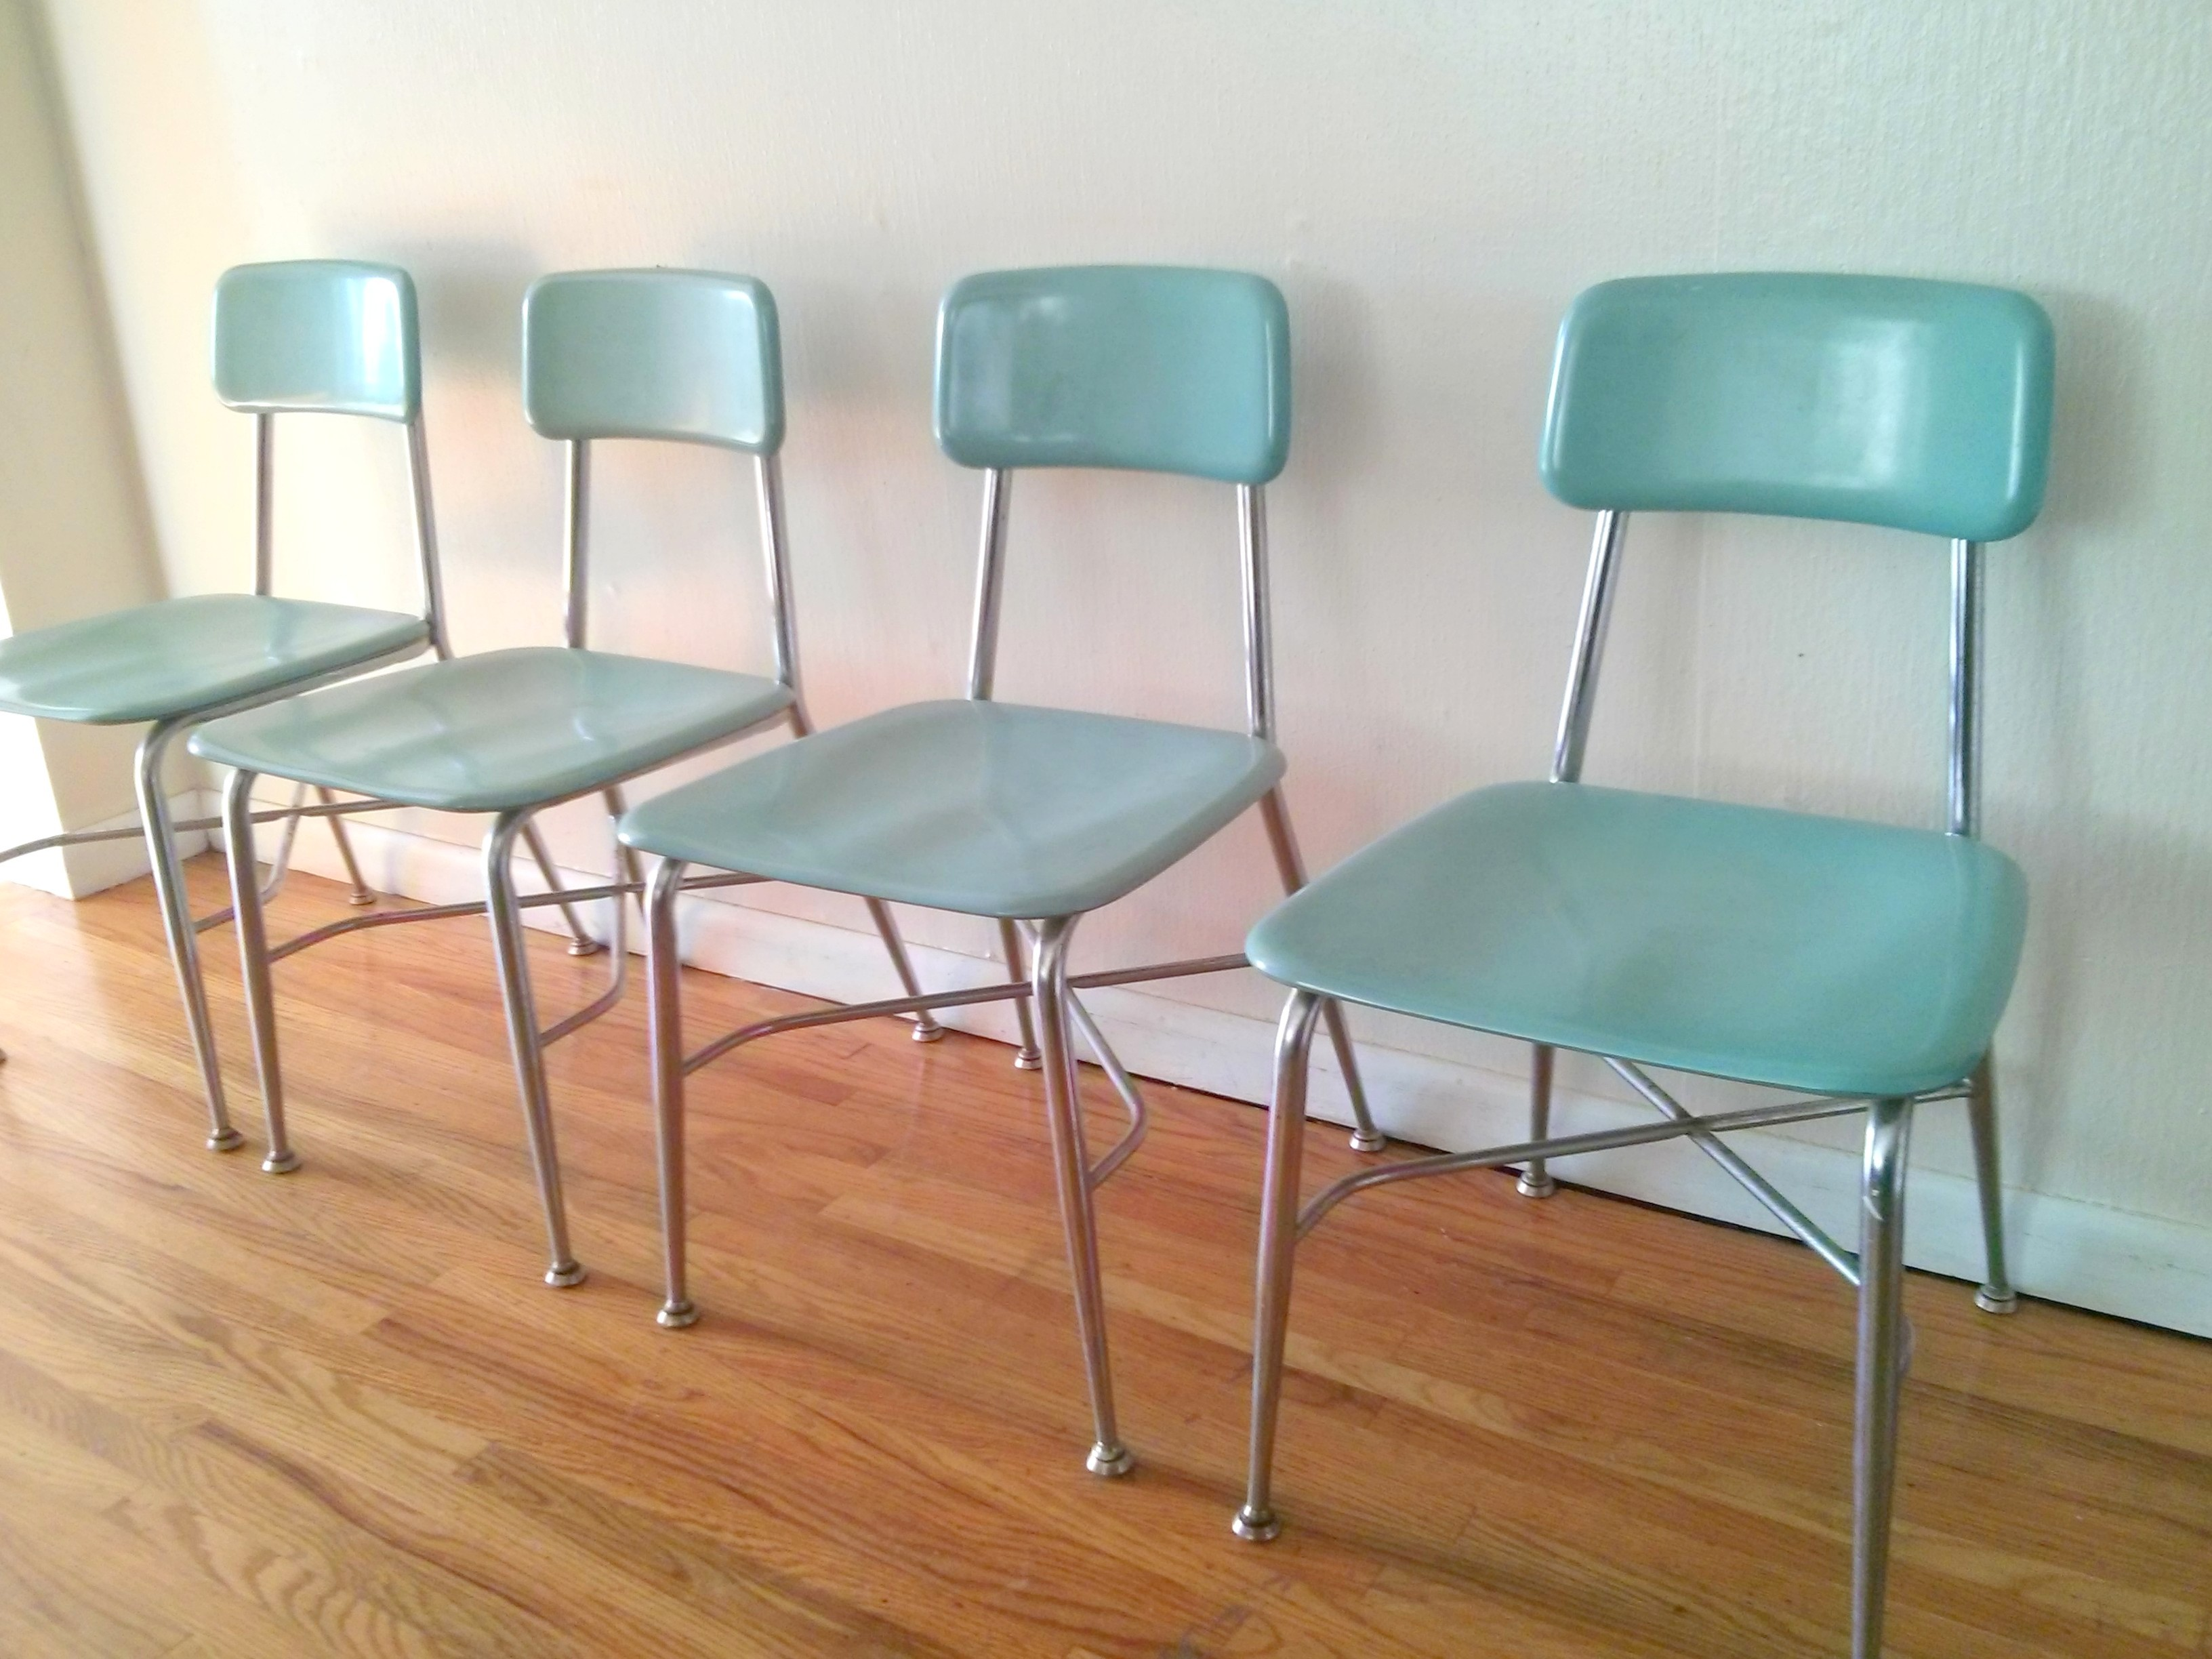 Charmant Heywood Wakefield Bakelite Chairs 1